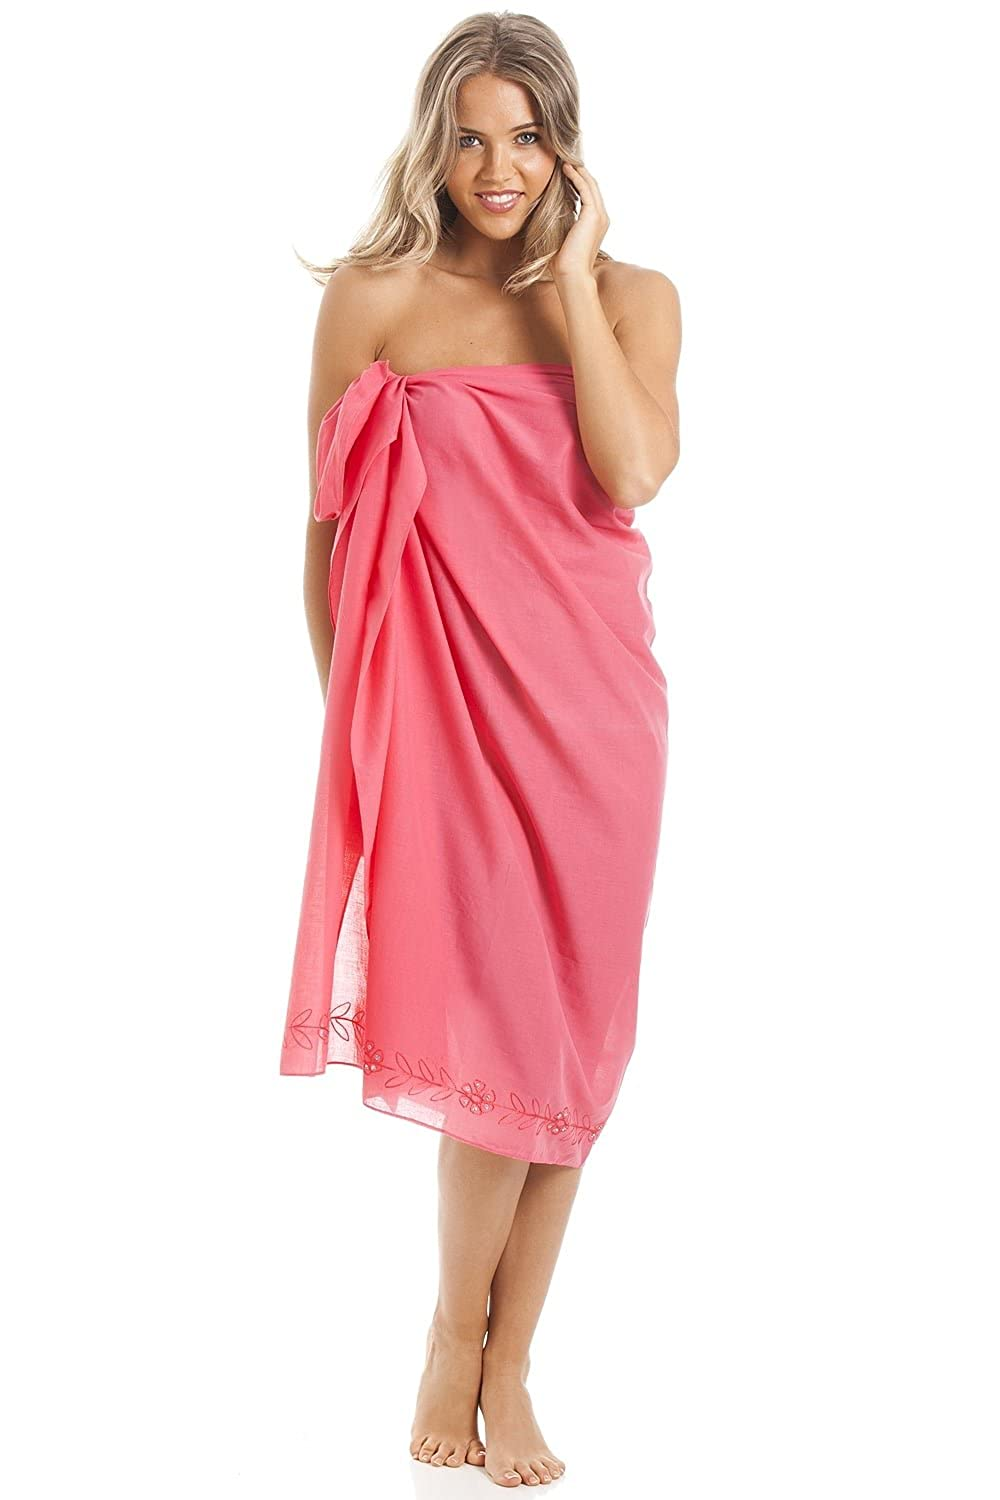 Camille Womens Ladies Pink Long Length Sarong with Floral Embroidery